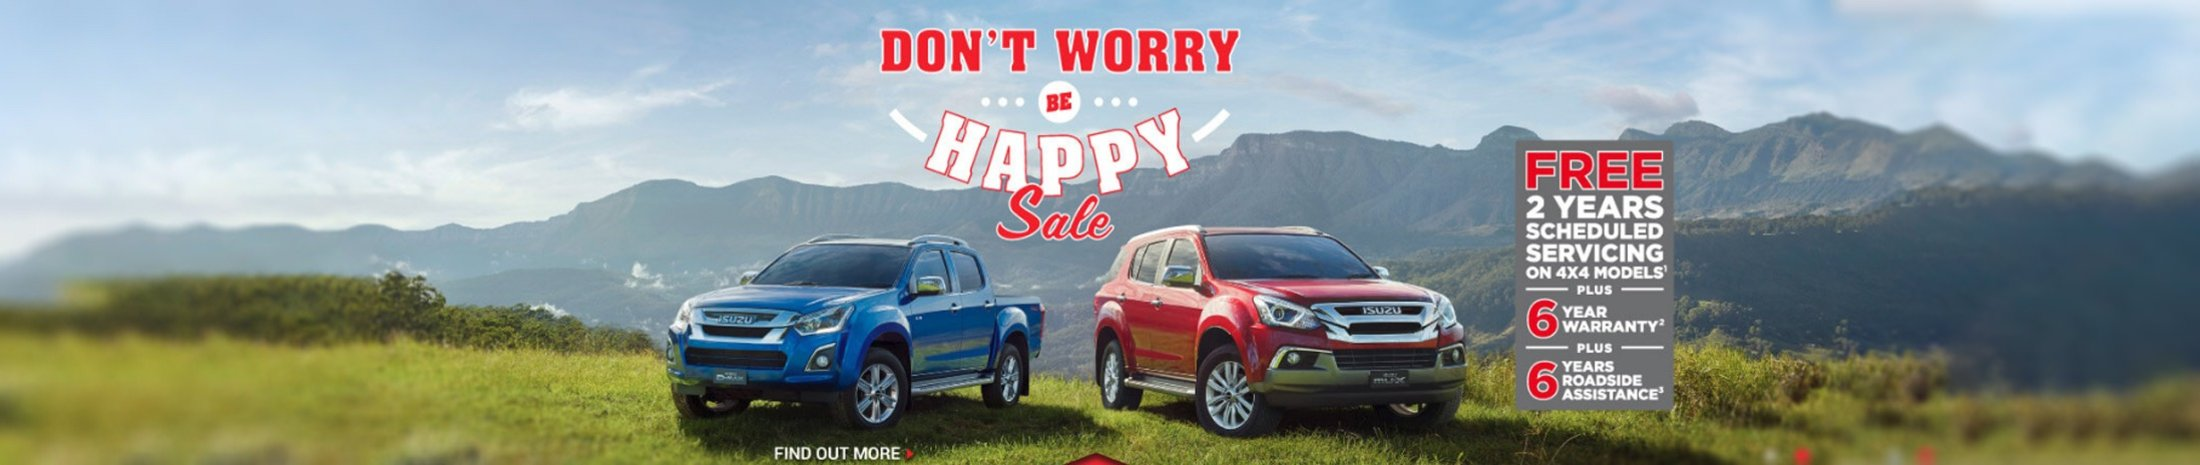 The Don't Worry Be Happy Sale Is Now On!